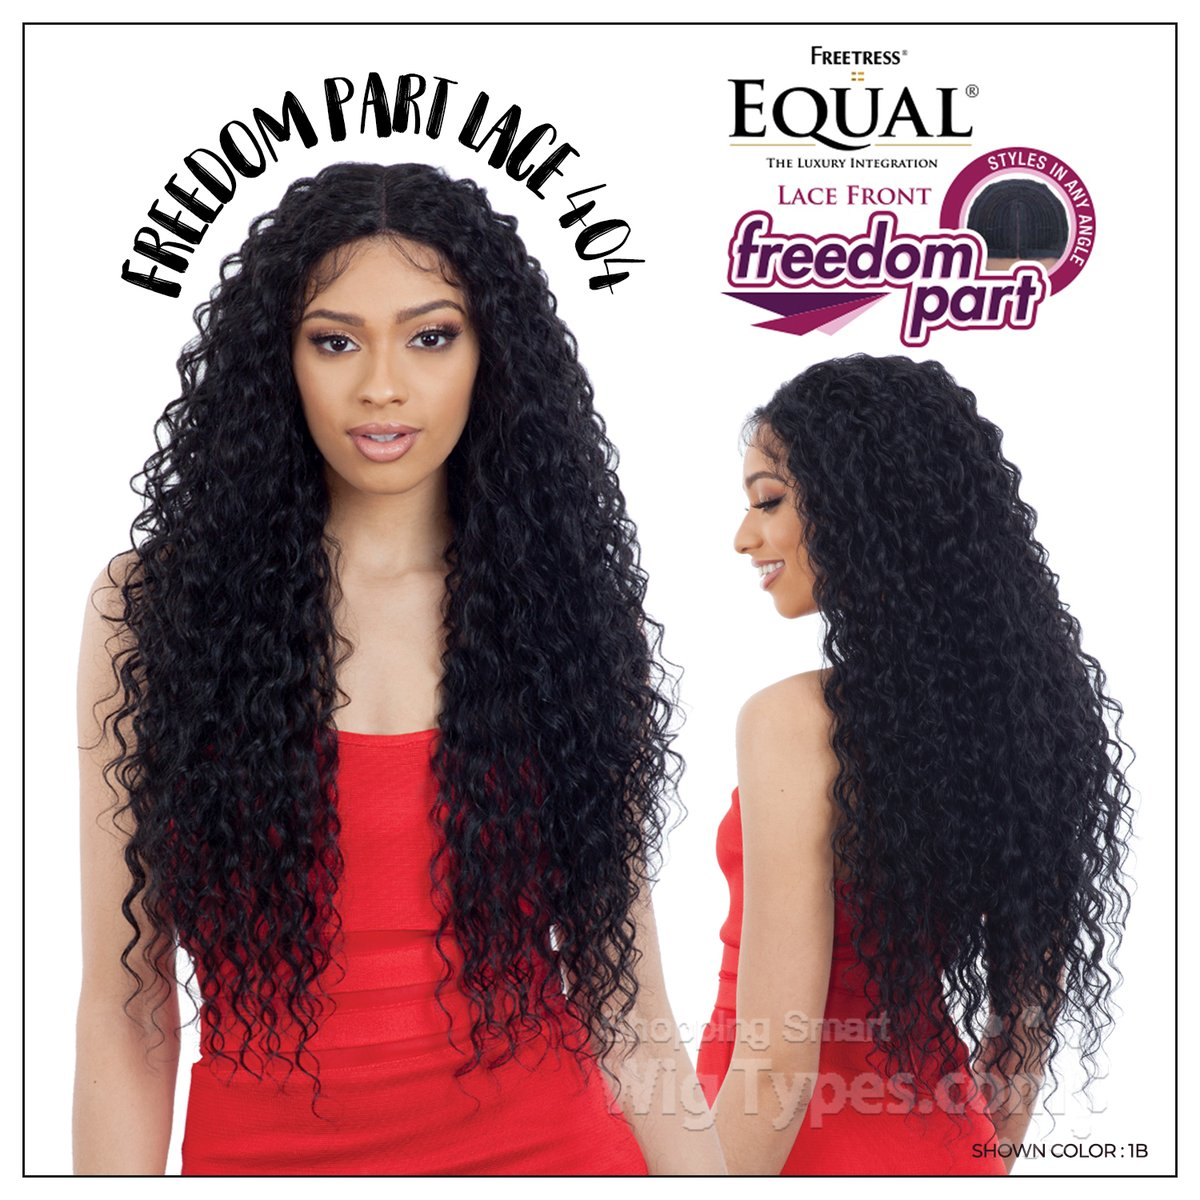 Freetress Equal Synthetic Freedom Part Lace Front Wig - FREEDOM PART LACE 404 (https://soo.nr/PfeY)  . . . . #wigtypes #wigtypesdotcom #trendyhair #protectivestyles #blackgirlhair #instahair ##lacefrontwig #syntheticwigs #freetressequal #freedompartwig #freedompartlace404pic.twitter.com/3dmb0MHSw7